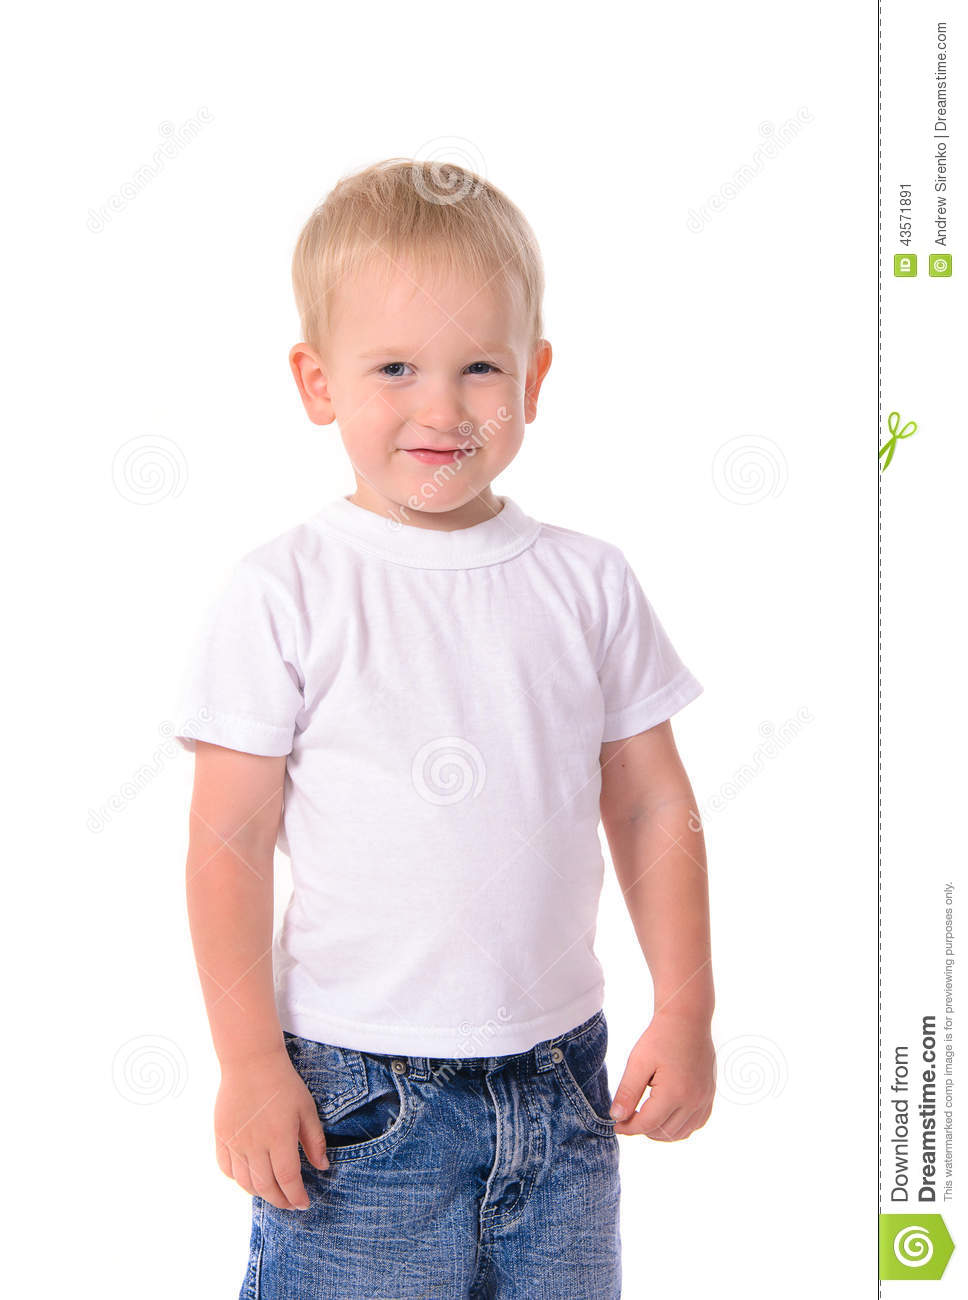 4 Year Boy Bedroom Decorating Ideas: Portrait Of Fashionable Little Boy In White Shirt